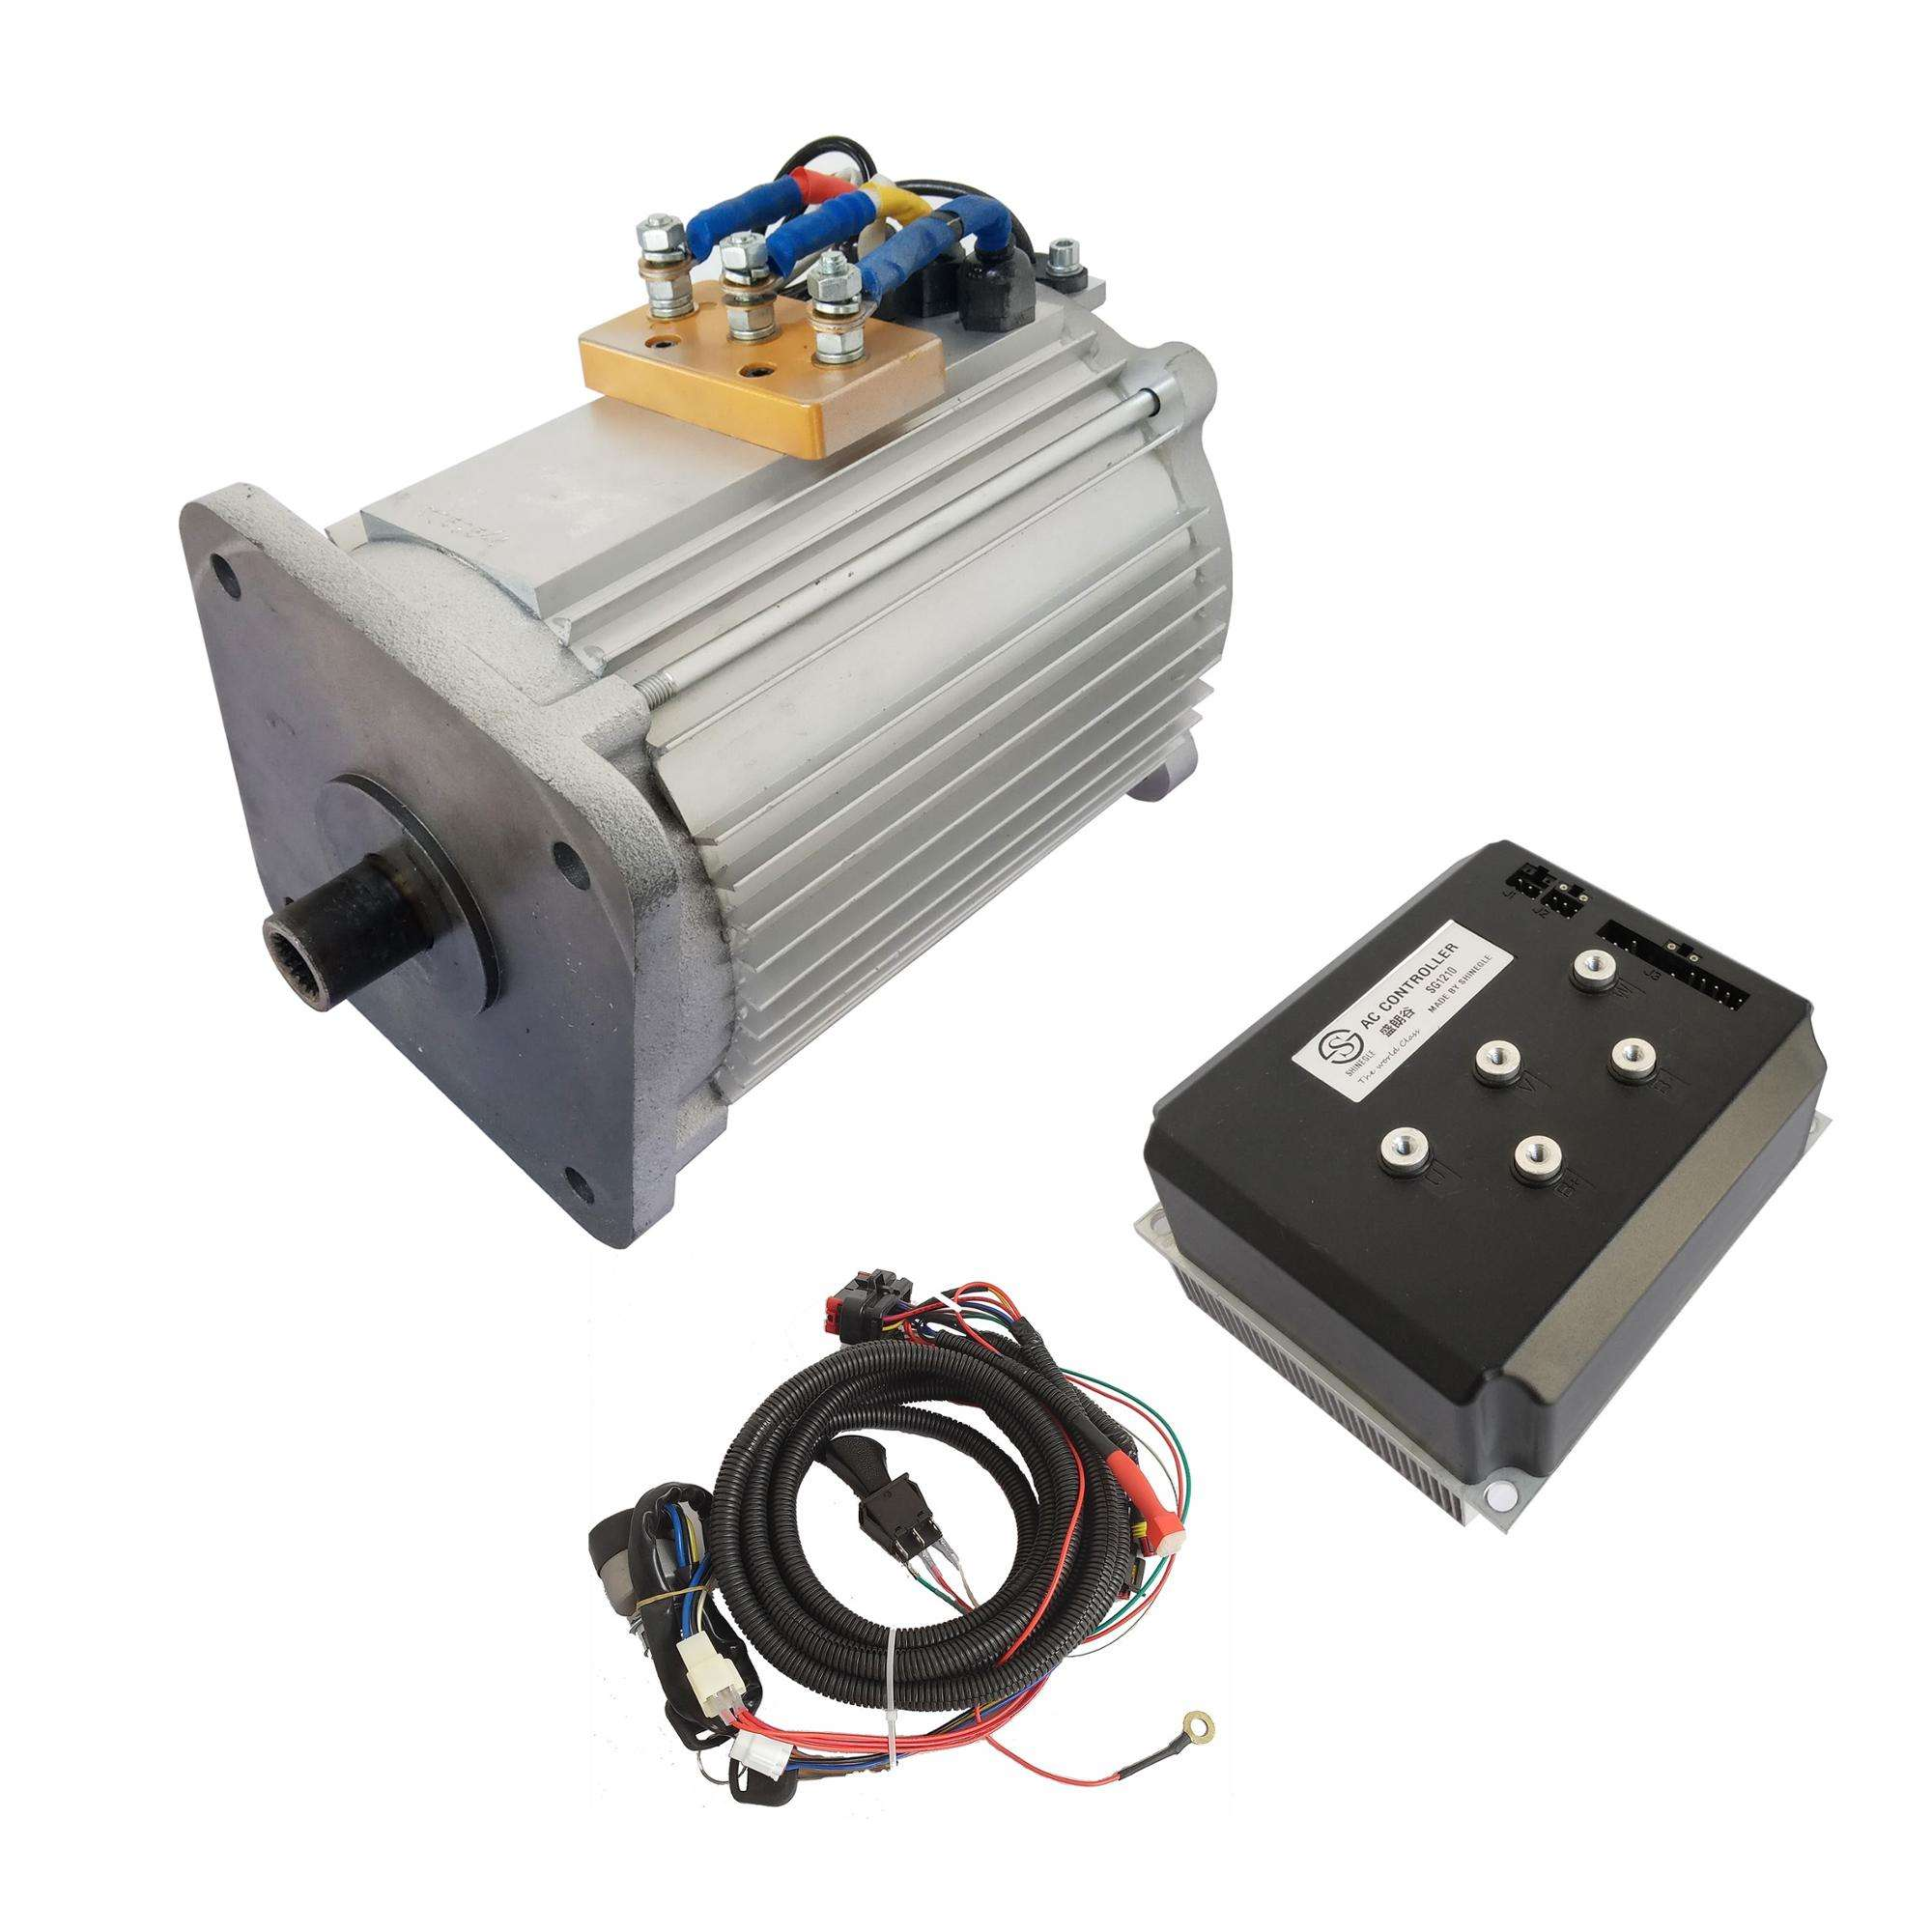 Regenerative braking 7.5kw universal motor speed controller for electric golf cart